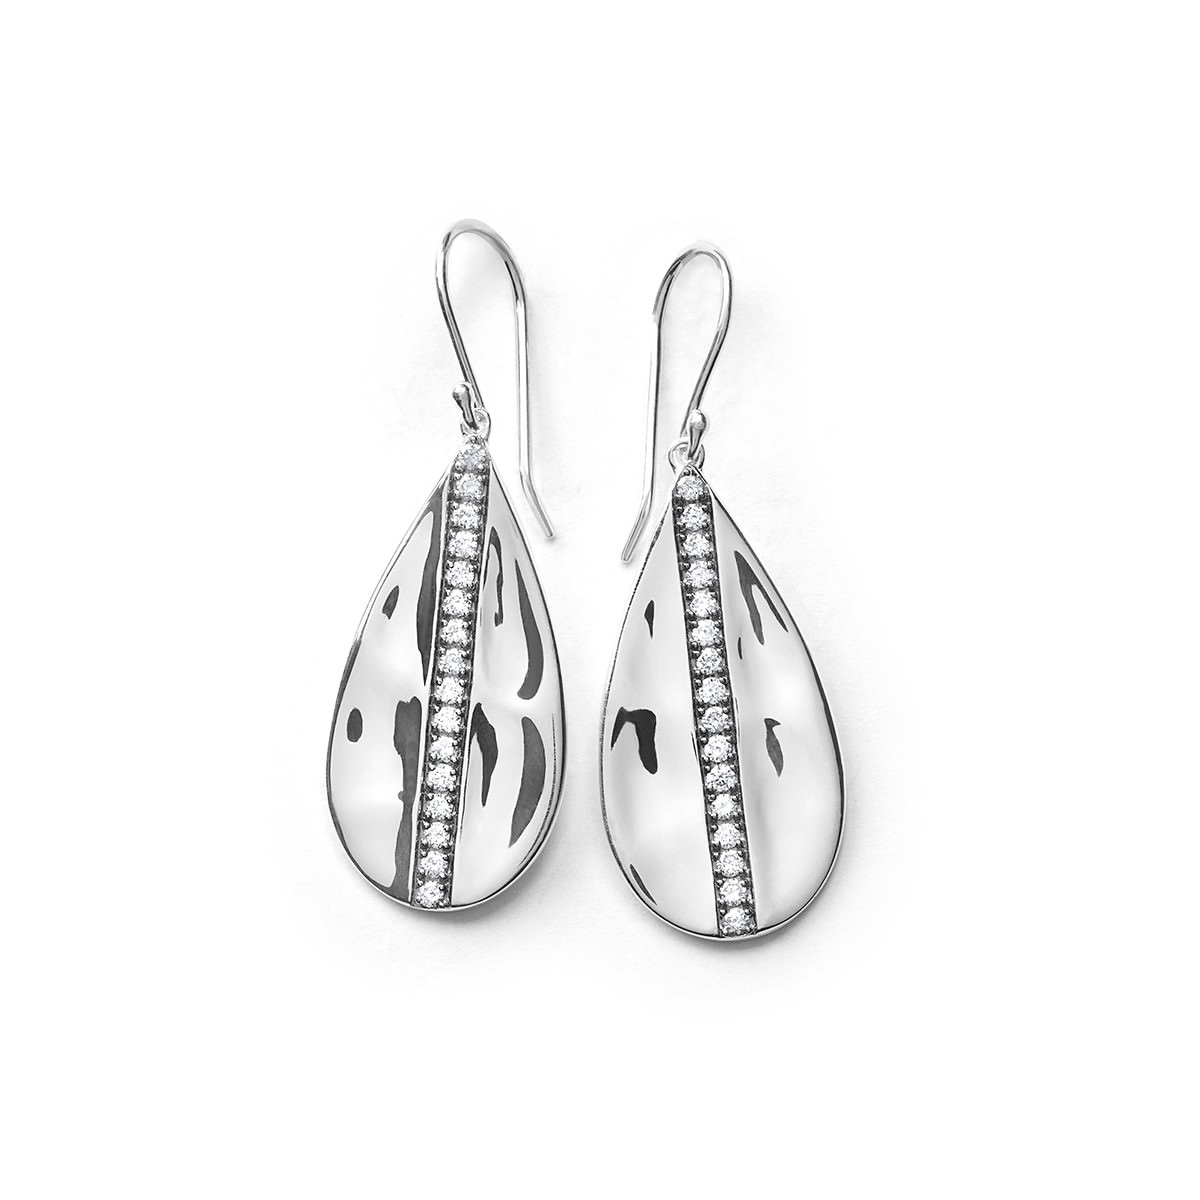 stylish silver earrings